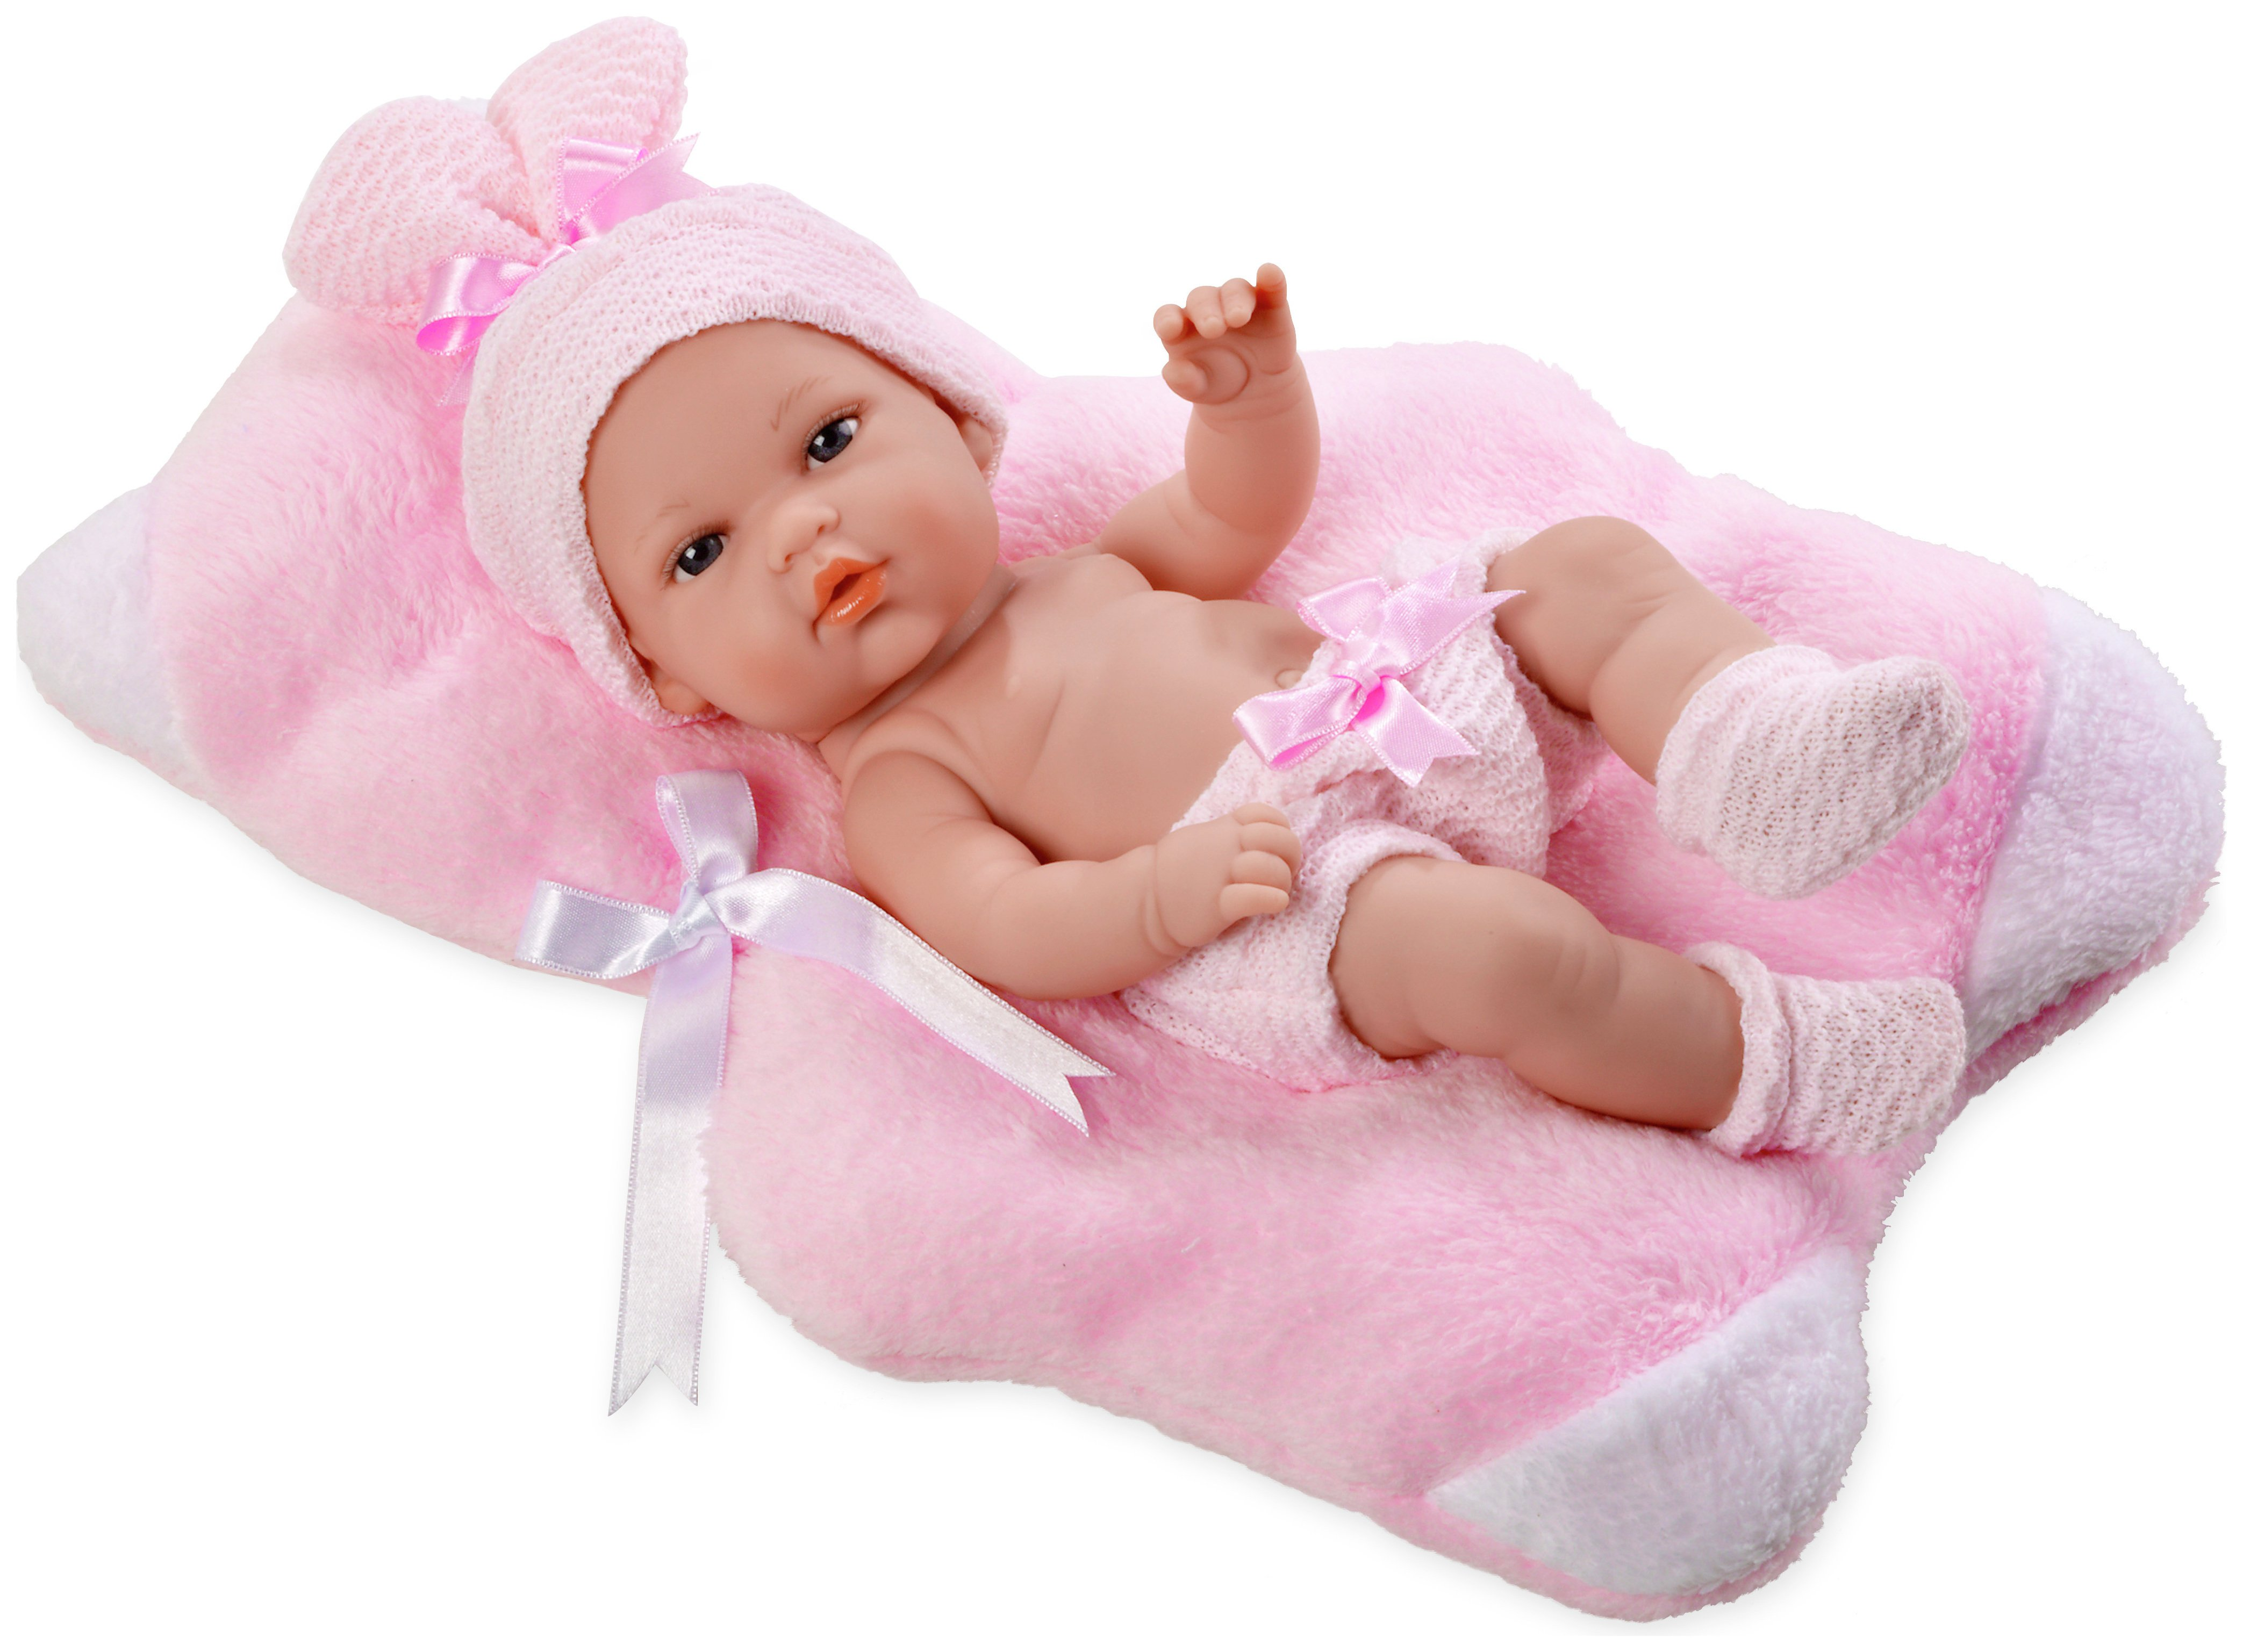 Image of Arias Elegance Natal Doll with Pink Cushion.